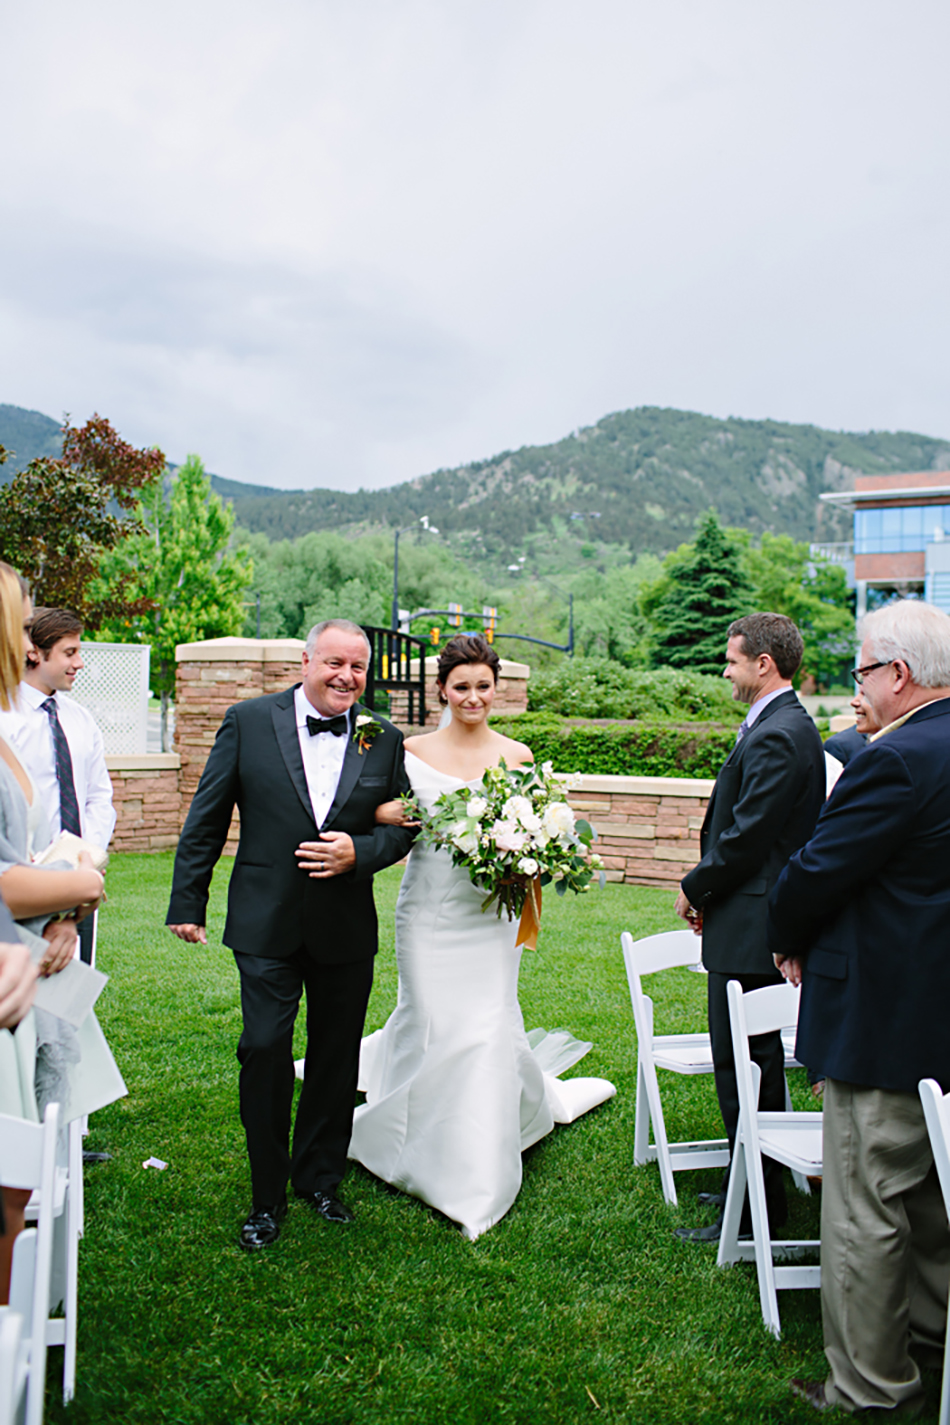 lelarose_colorado_realwedding_05.jpg